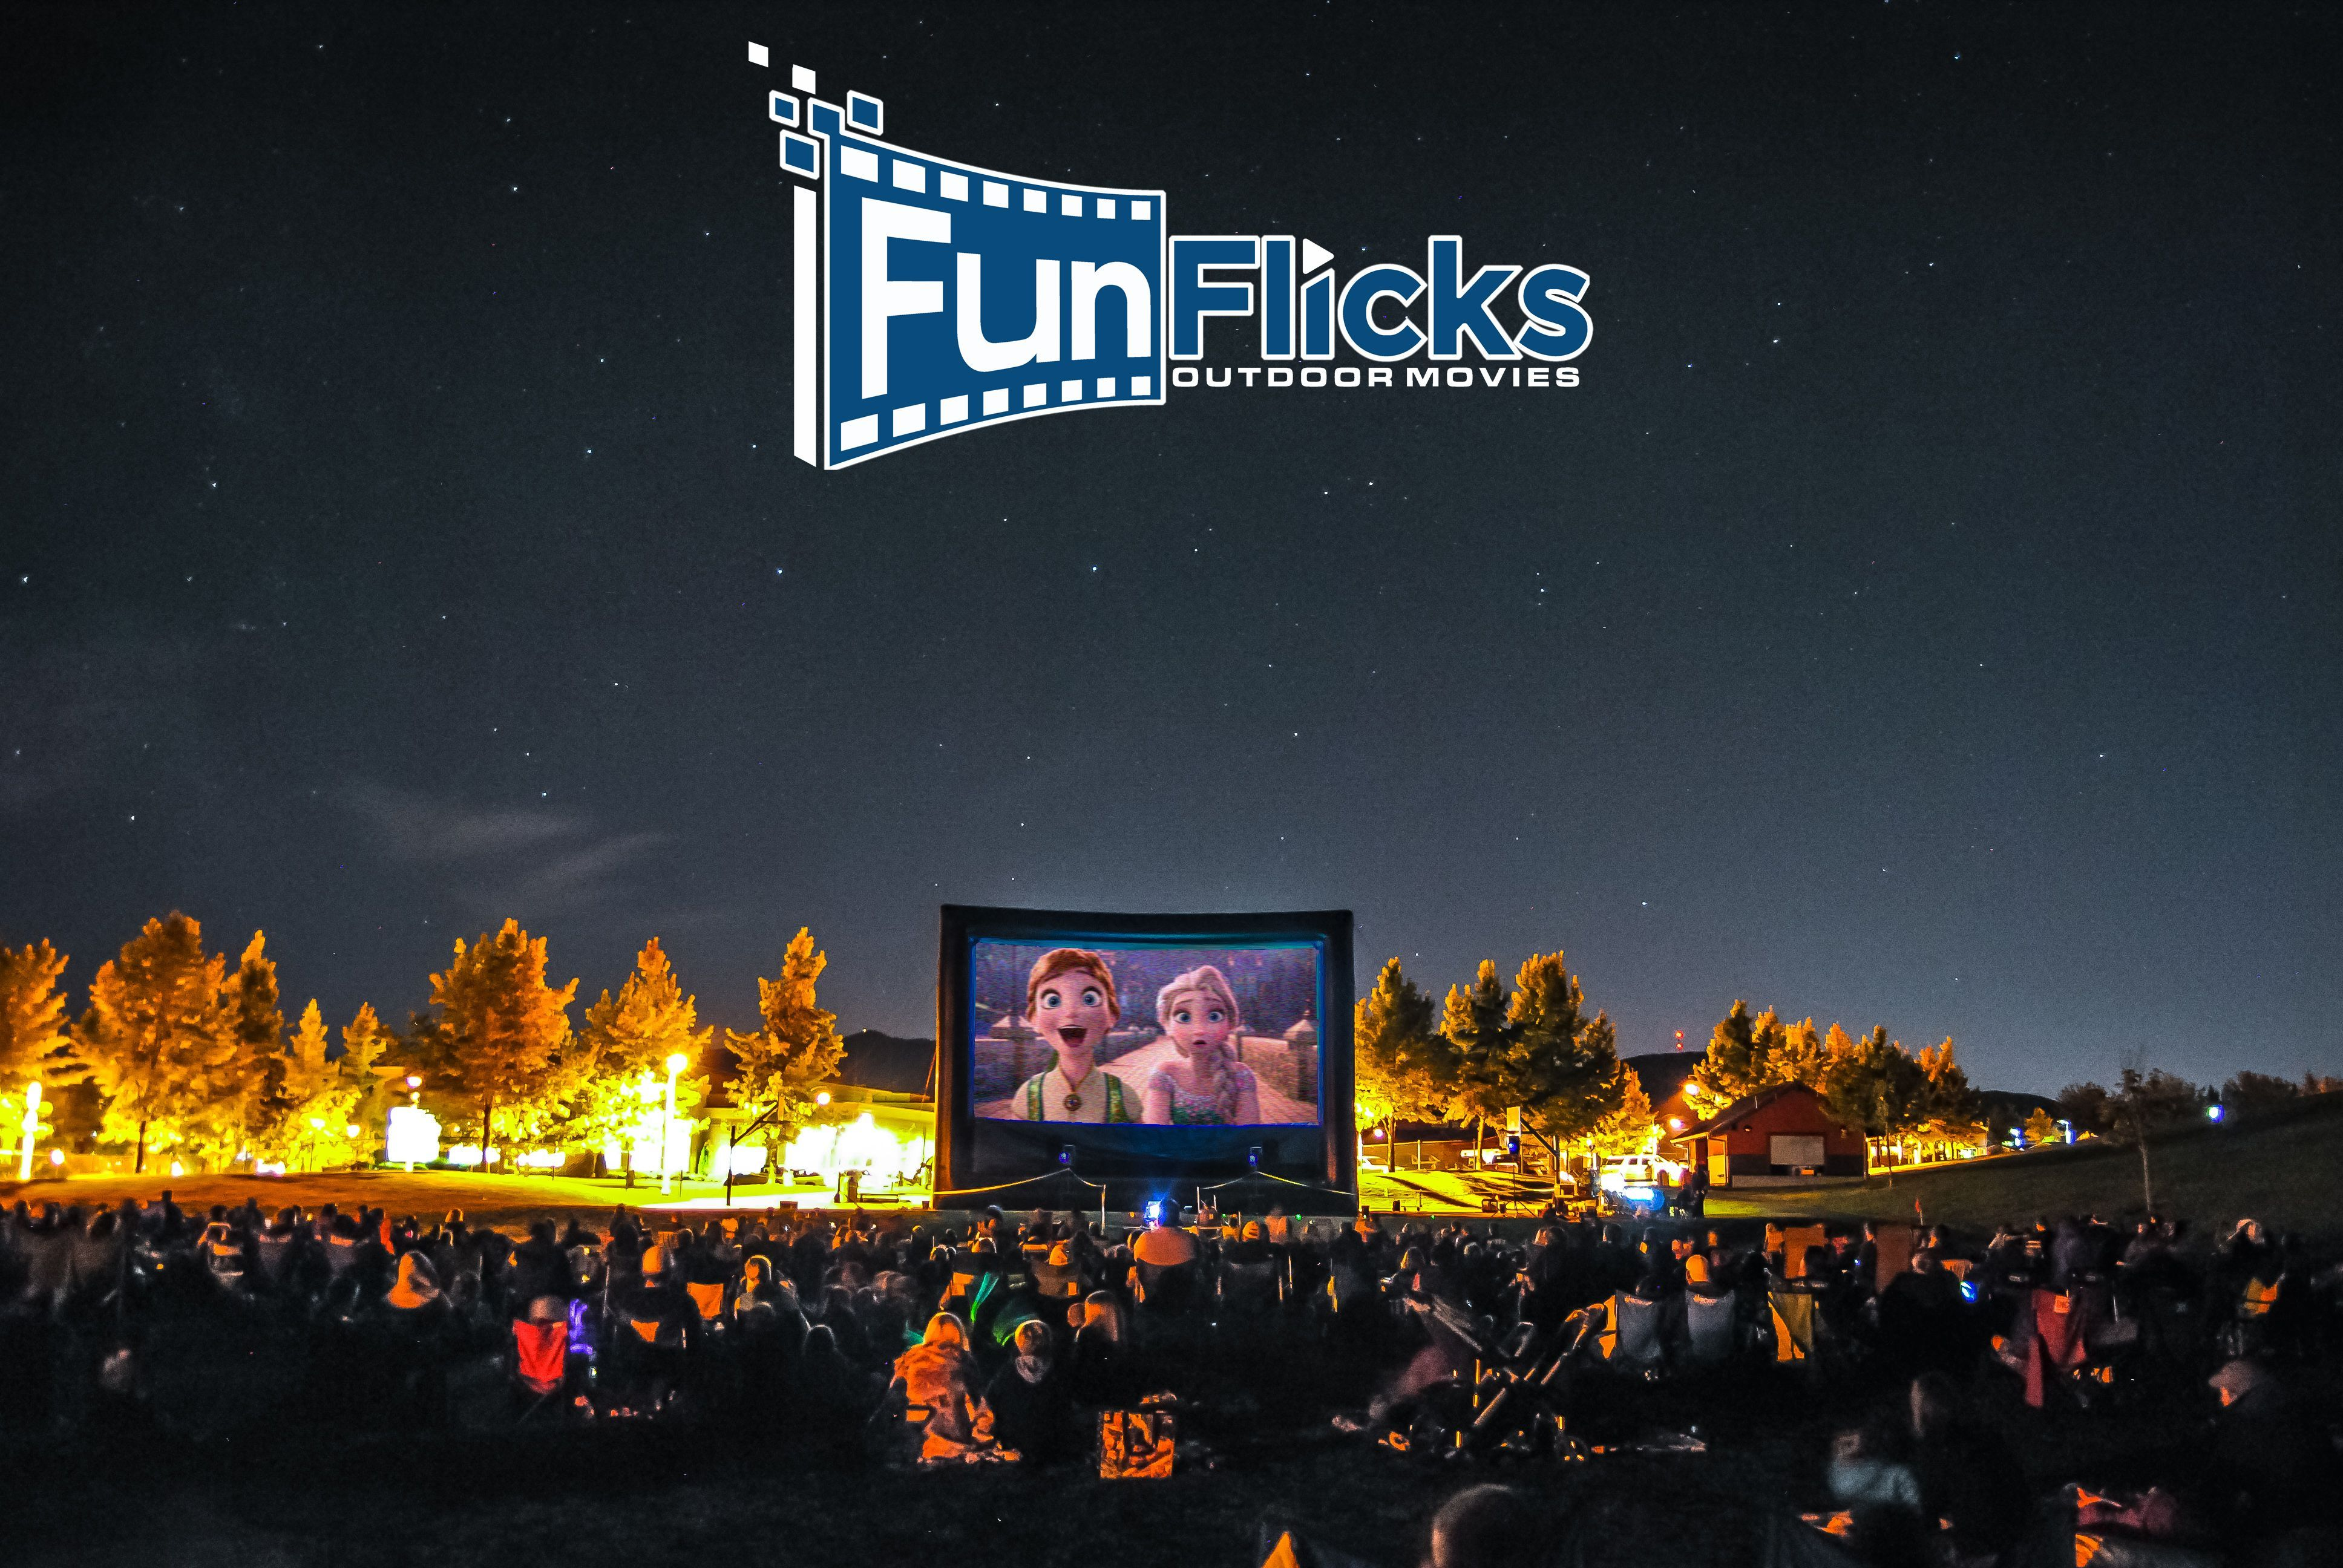 Marketing ideas for parks and recreation includes an emerging trend of outdoor movies in the park